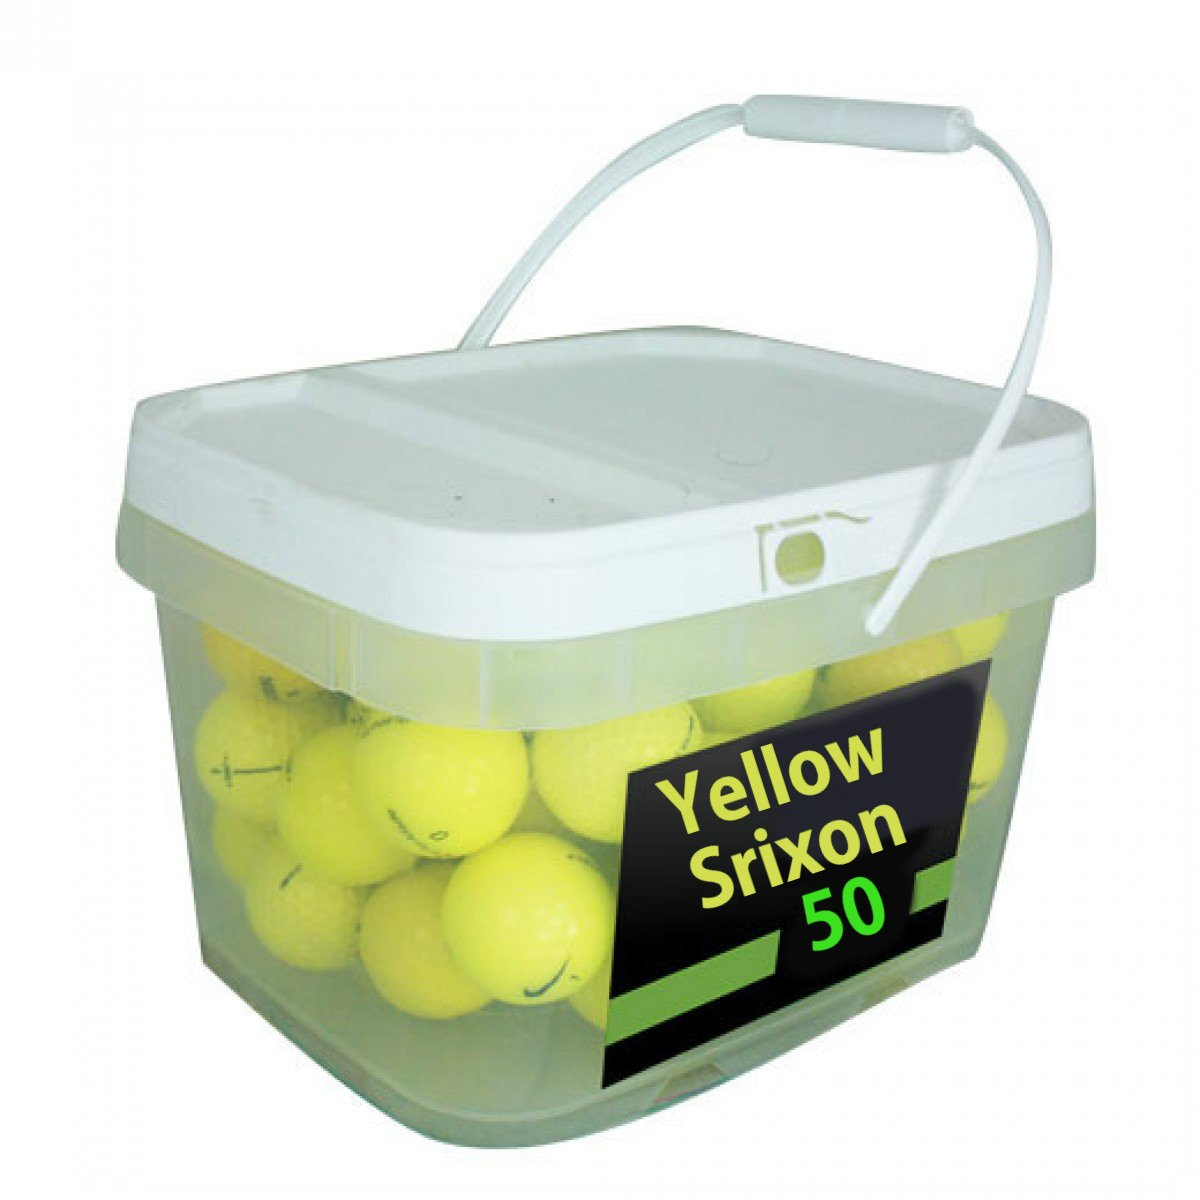 Srixon Yellow Premium Golf Balls (50 Pack)